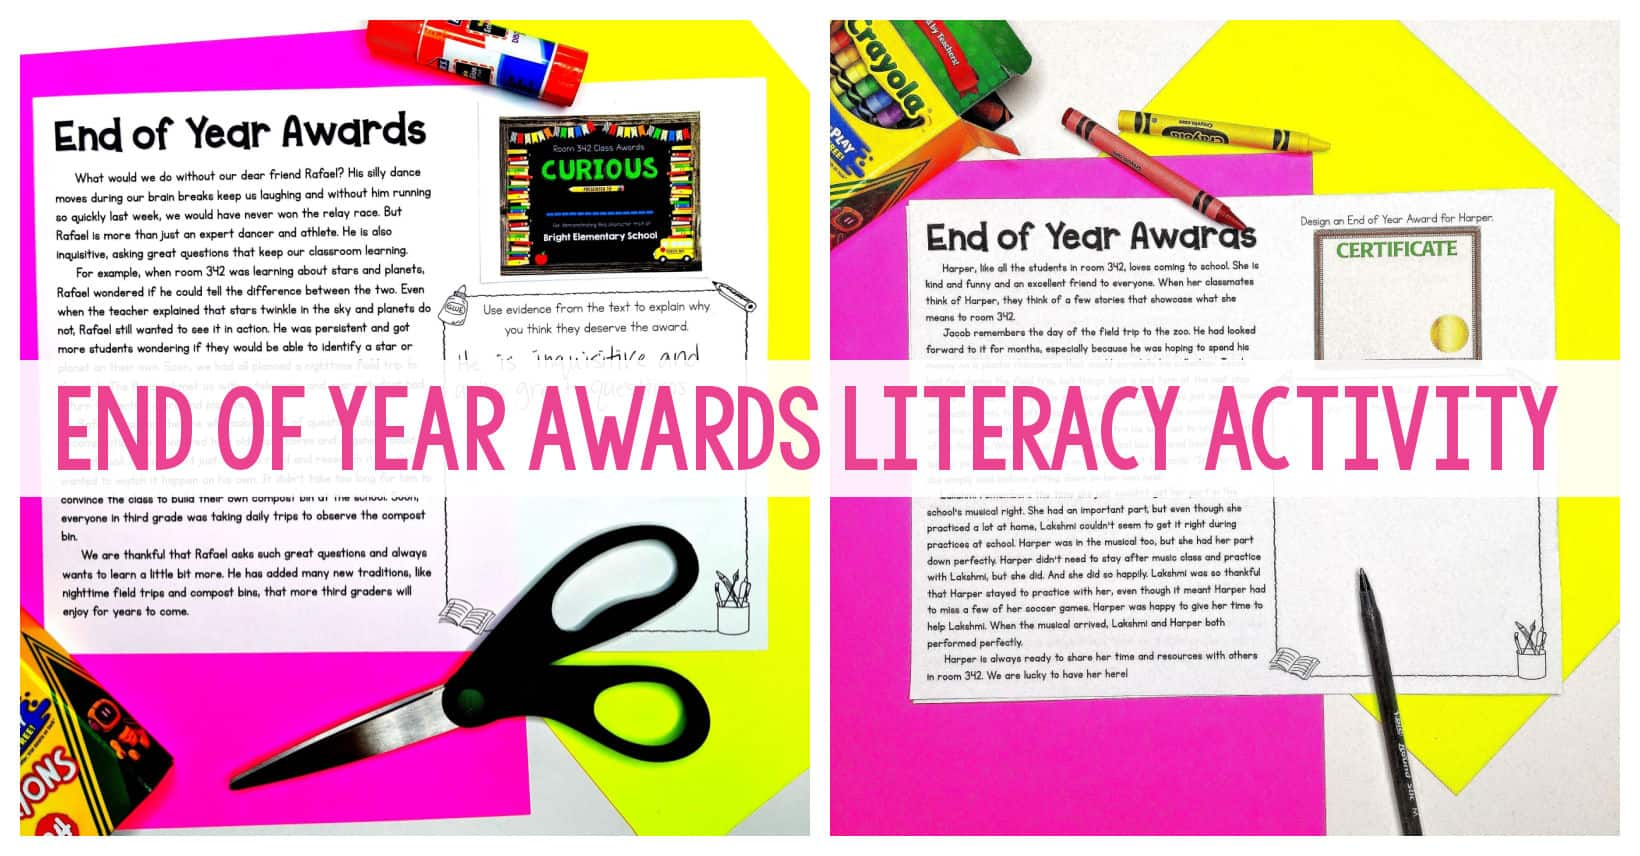 End of Year Awards Literacy Activity